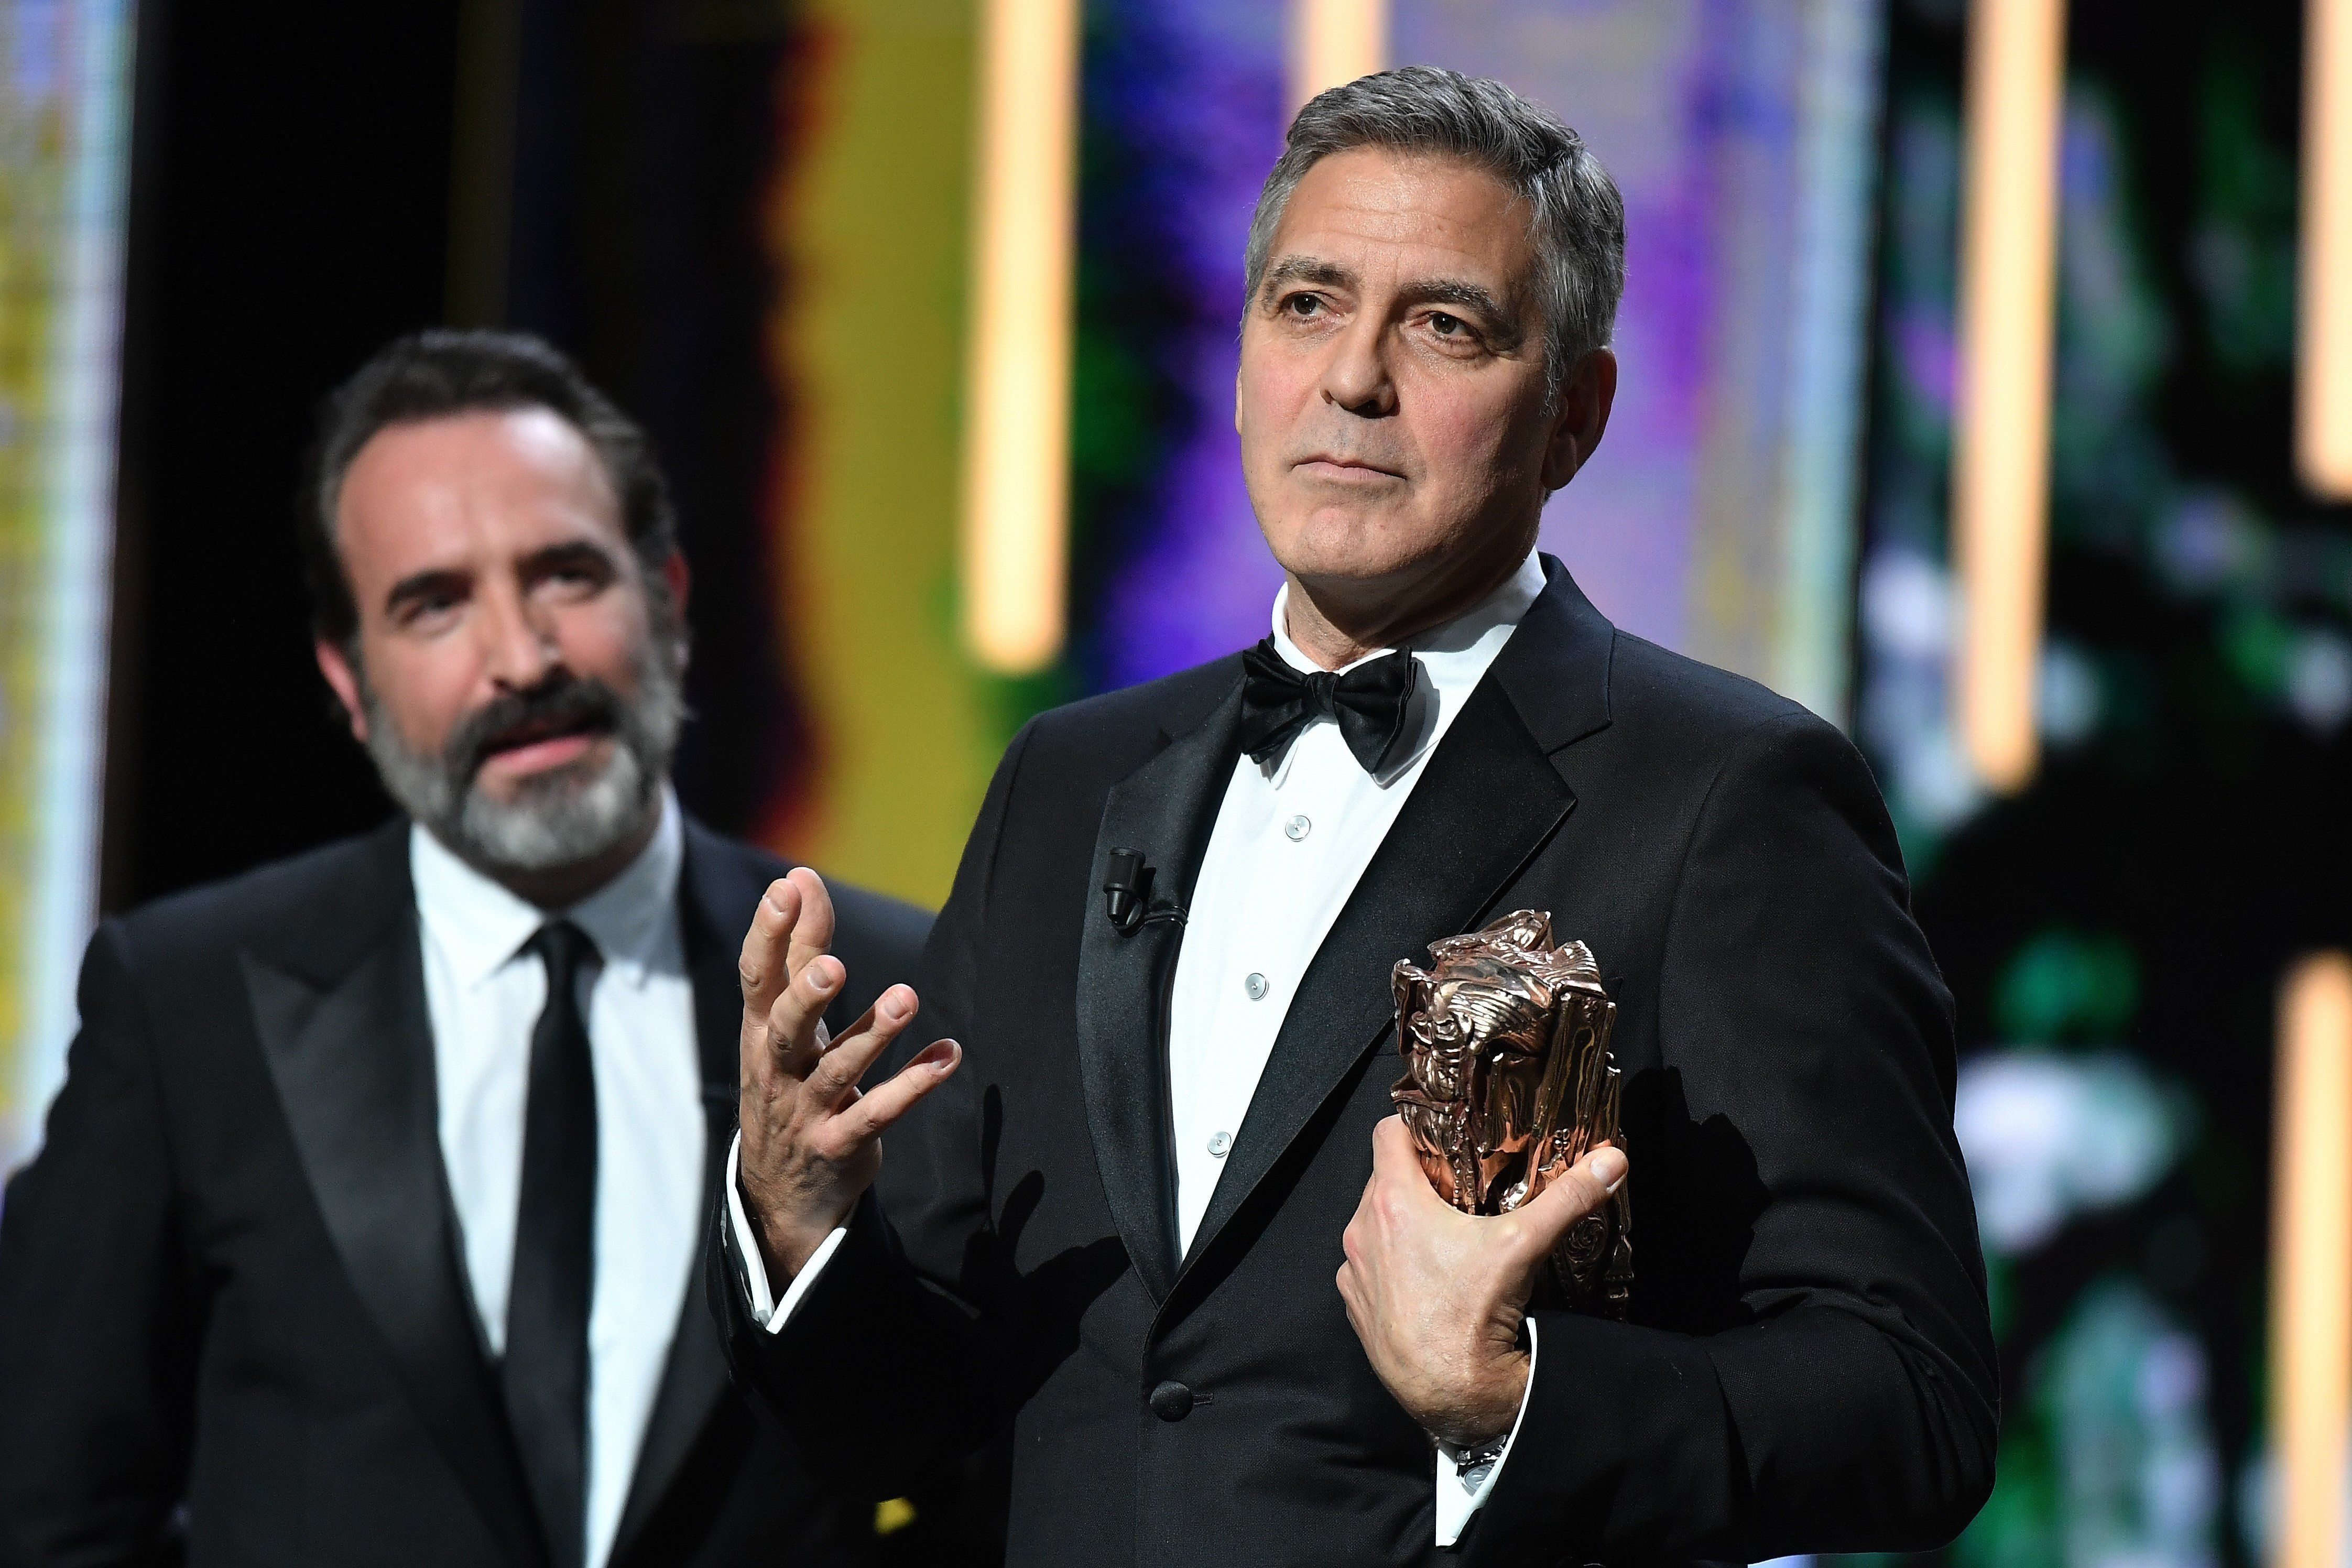 PARIS ,FRANCE-FEBRUARY 24: Actor George Clooney delivers a speech next to actor Jean Dujardin as he receives an Honorary Cesar Award at the 42nd Cesar Awards ceremony at Salle Pleyel in Paris, France on February 24, 2017.   (Photo by Philip Rock/Anadolu Agency/Getty Images)